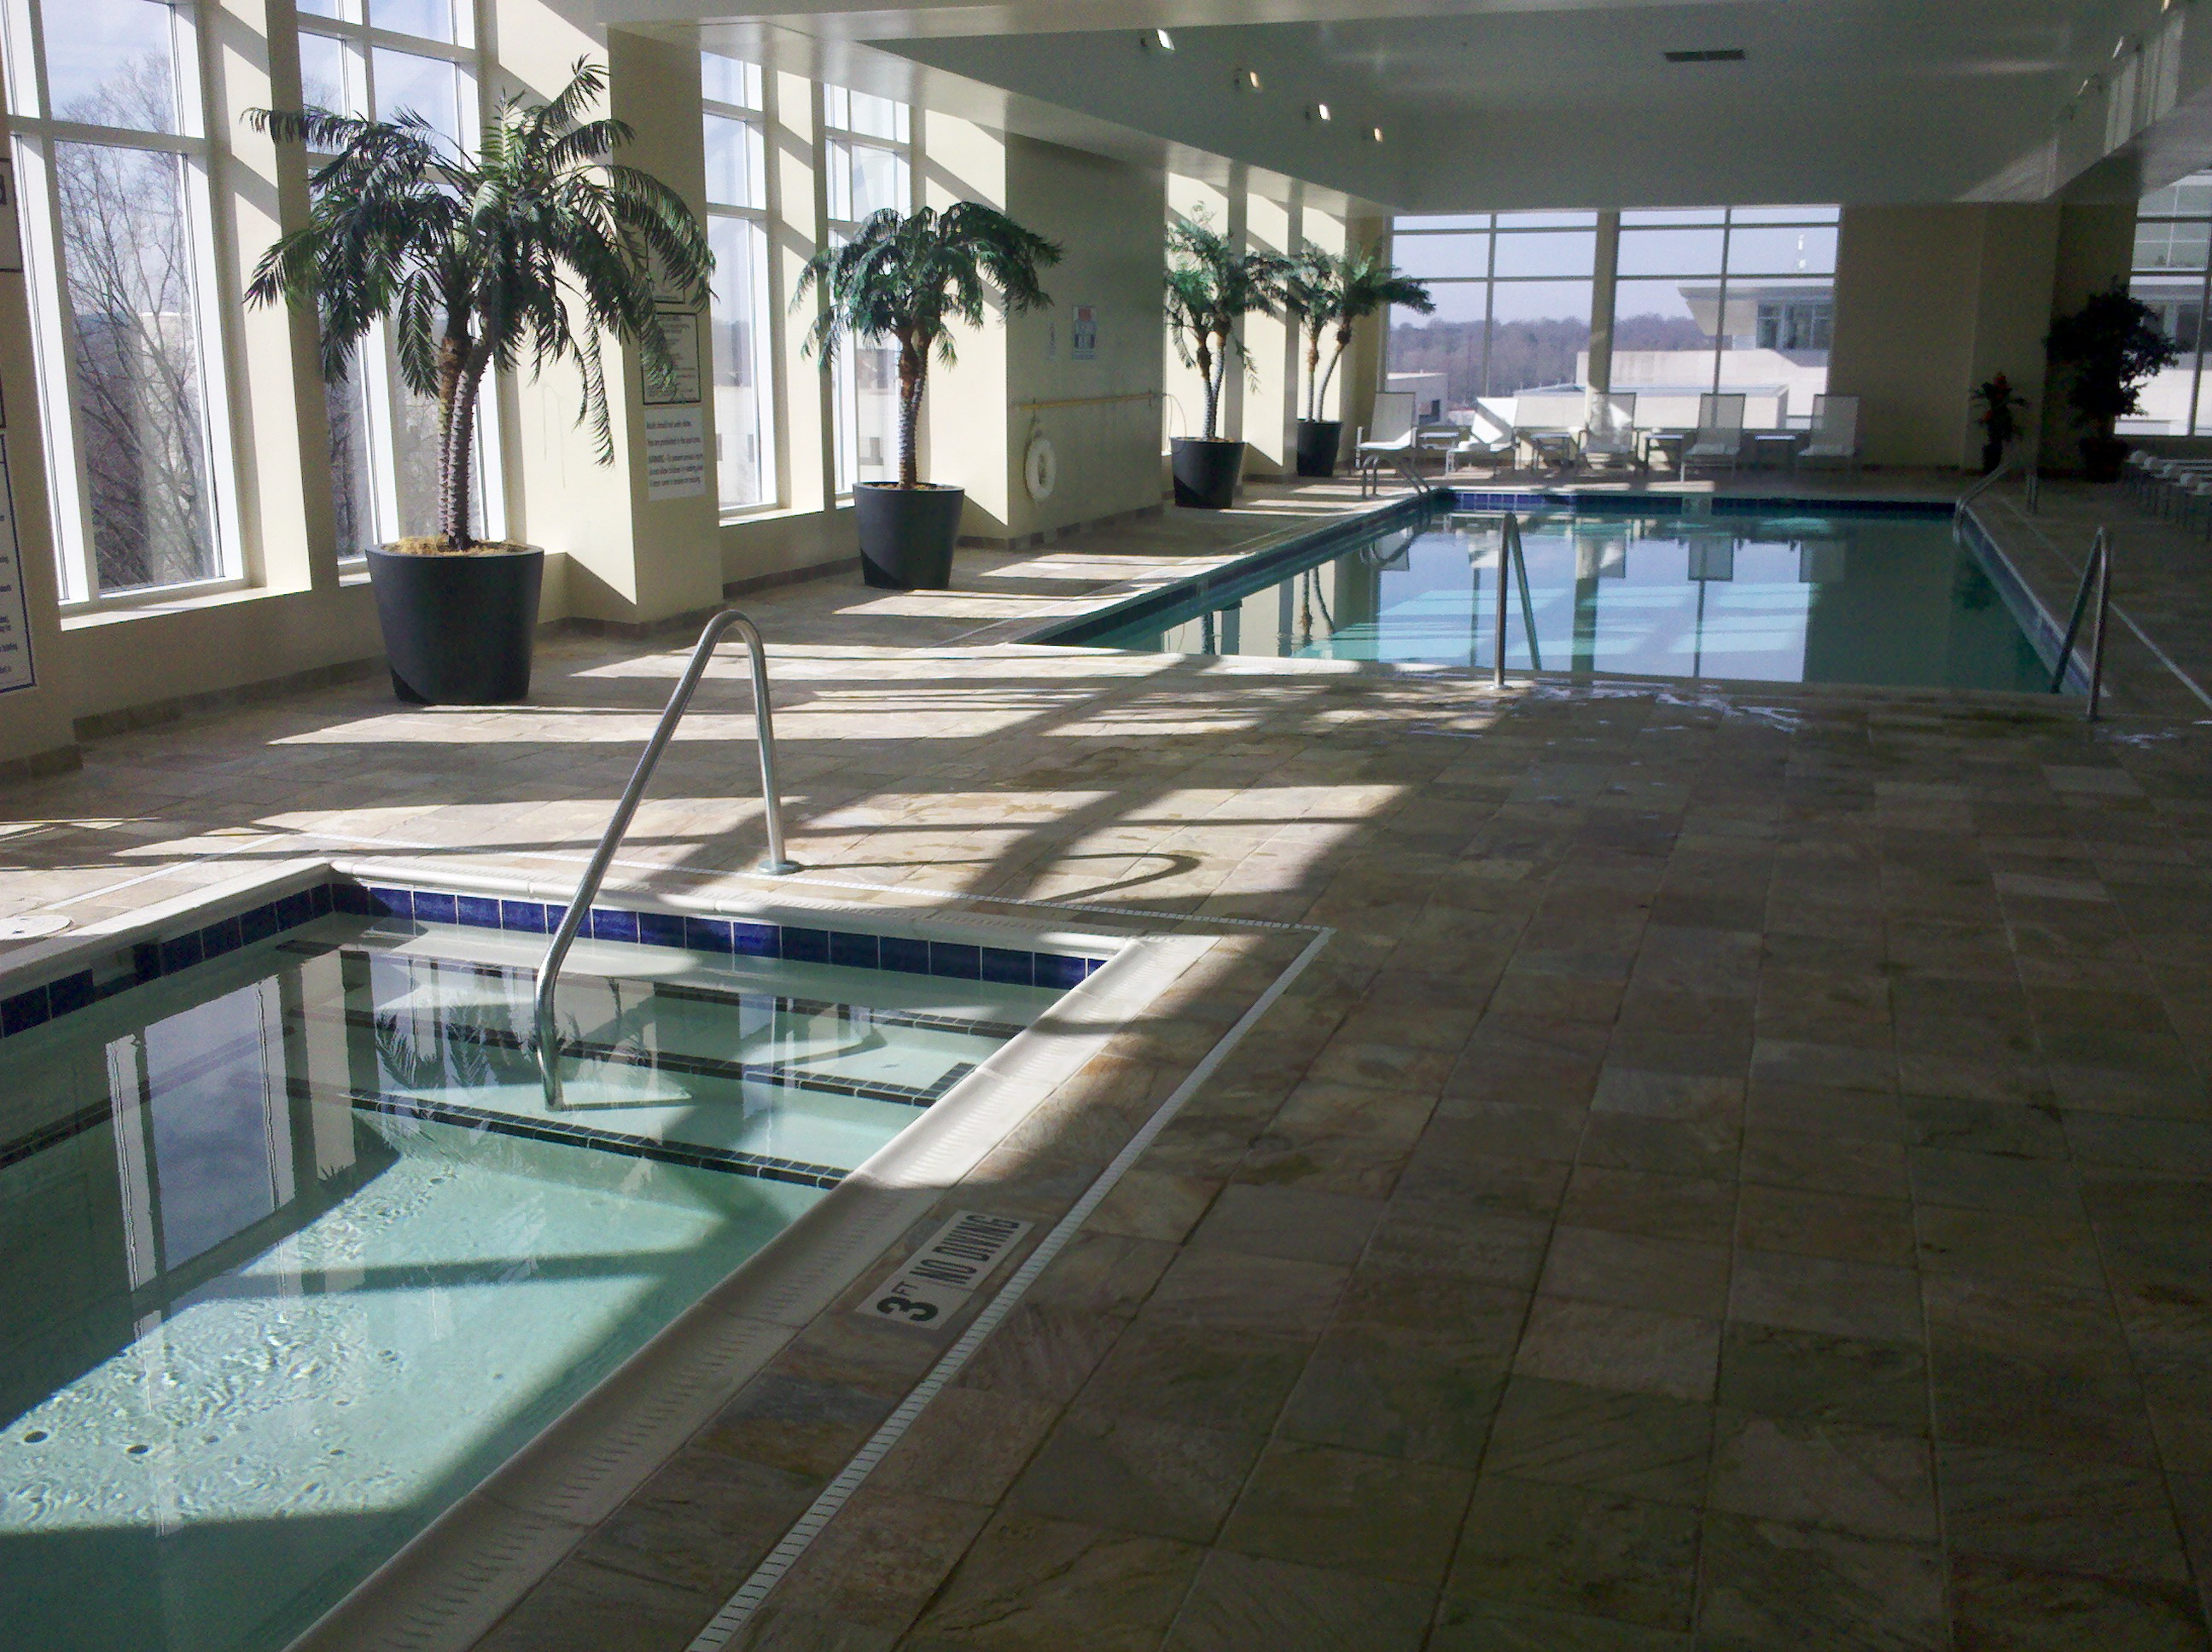 Commercial pools hammerhead pool services inc for Commercial pools